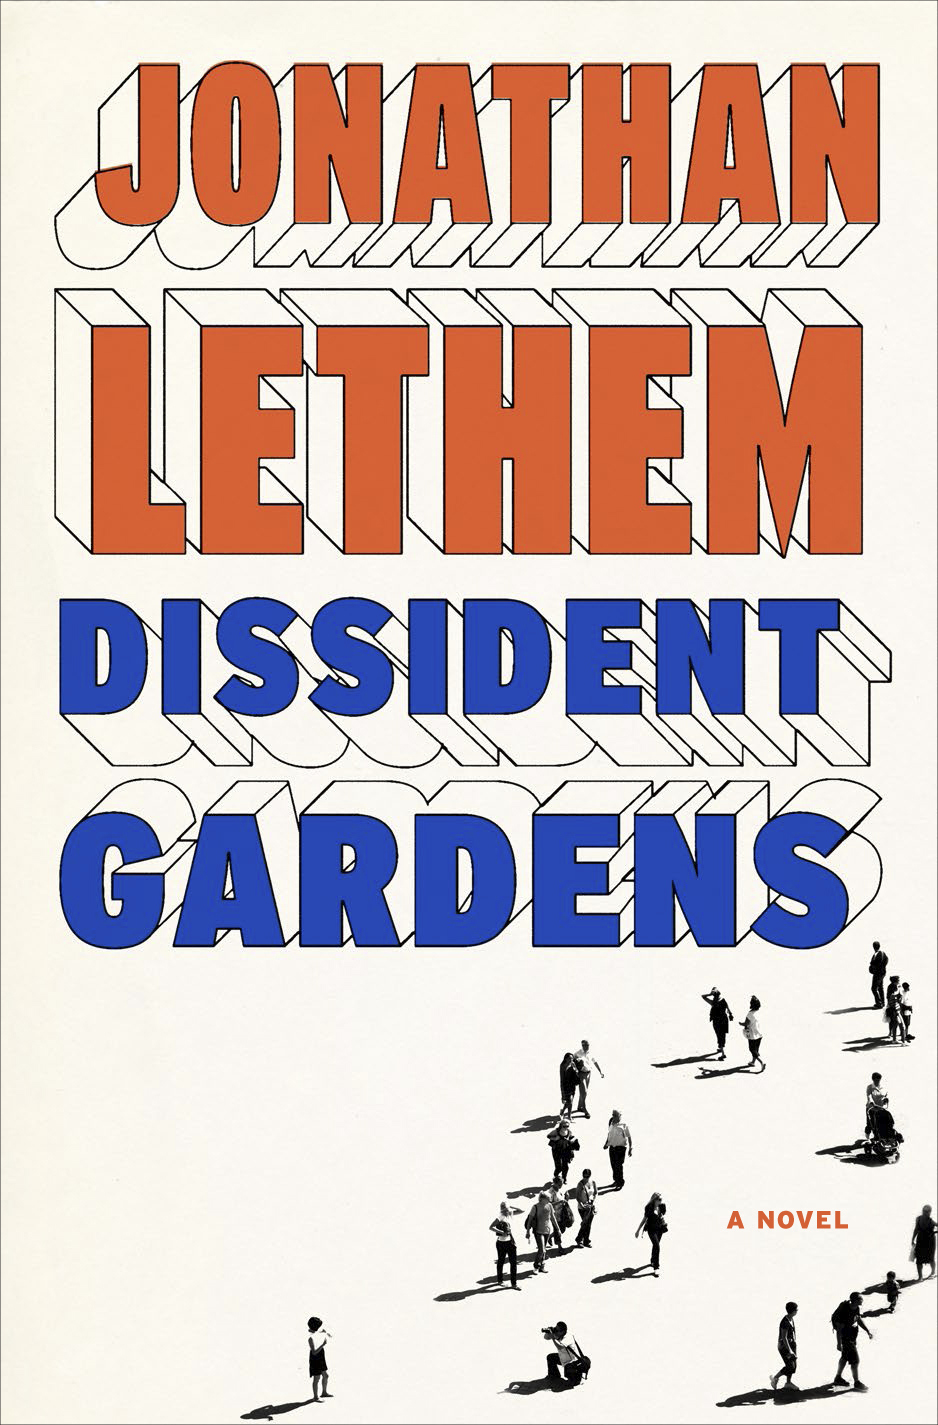 Book review dissident gardens by jonathan lethem moment magazine